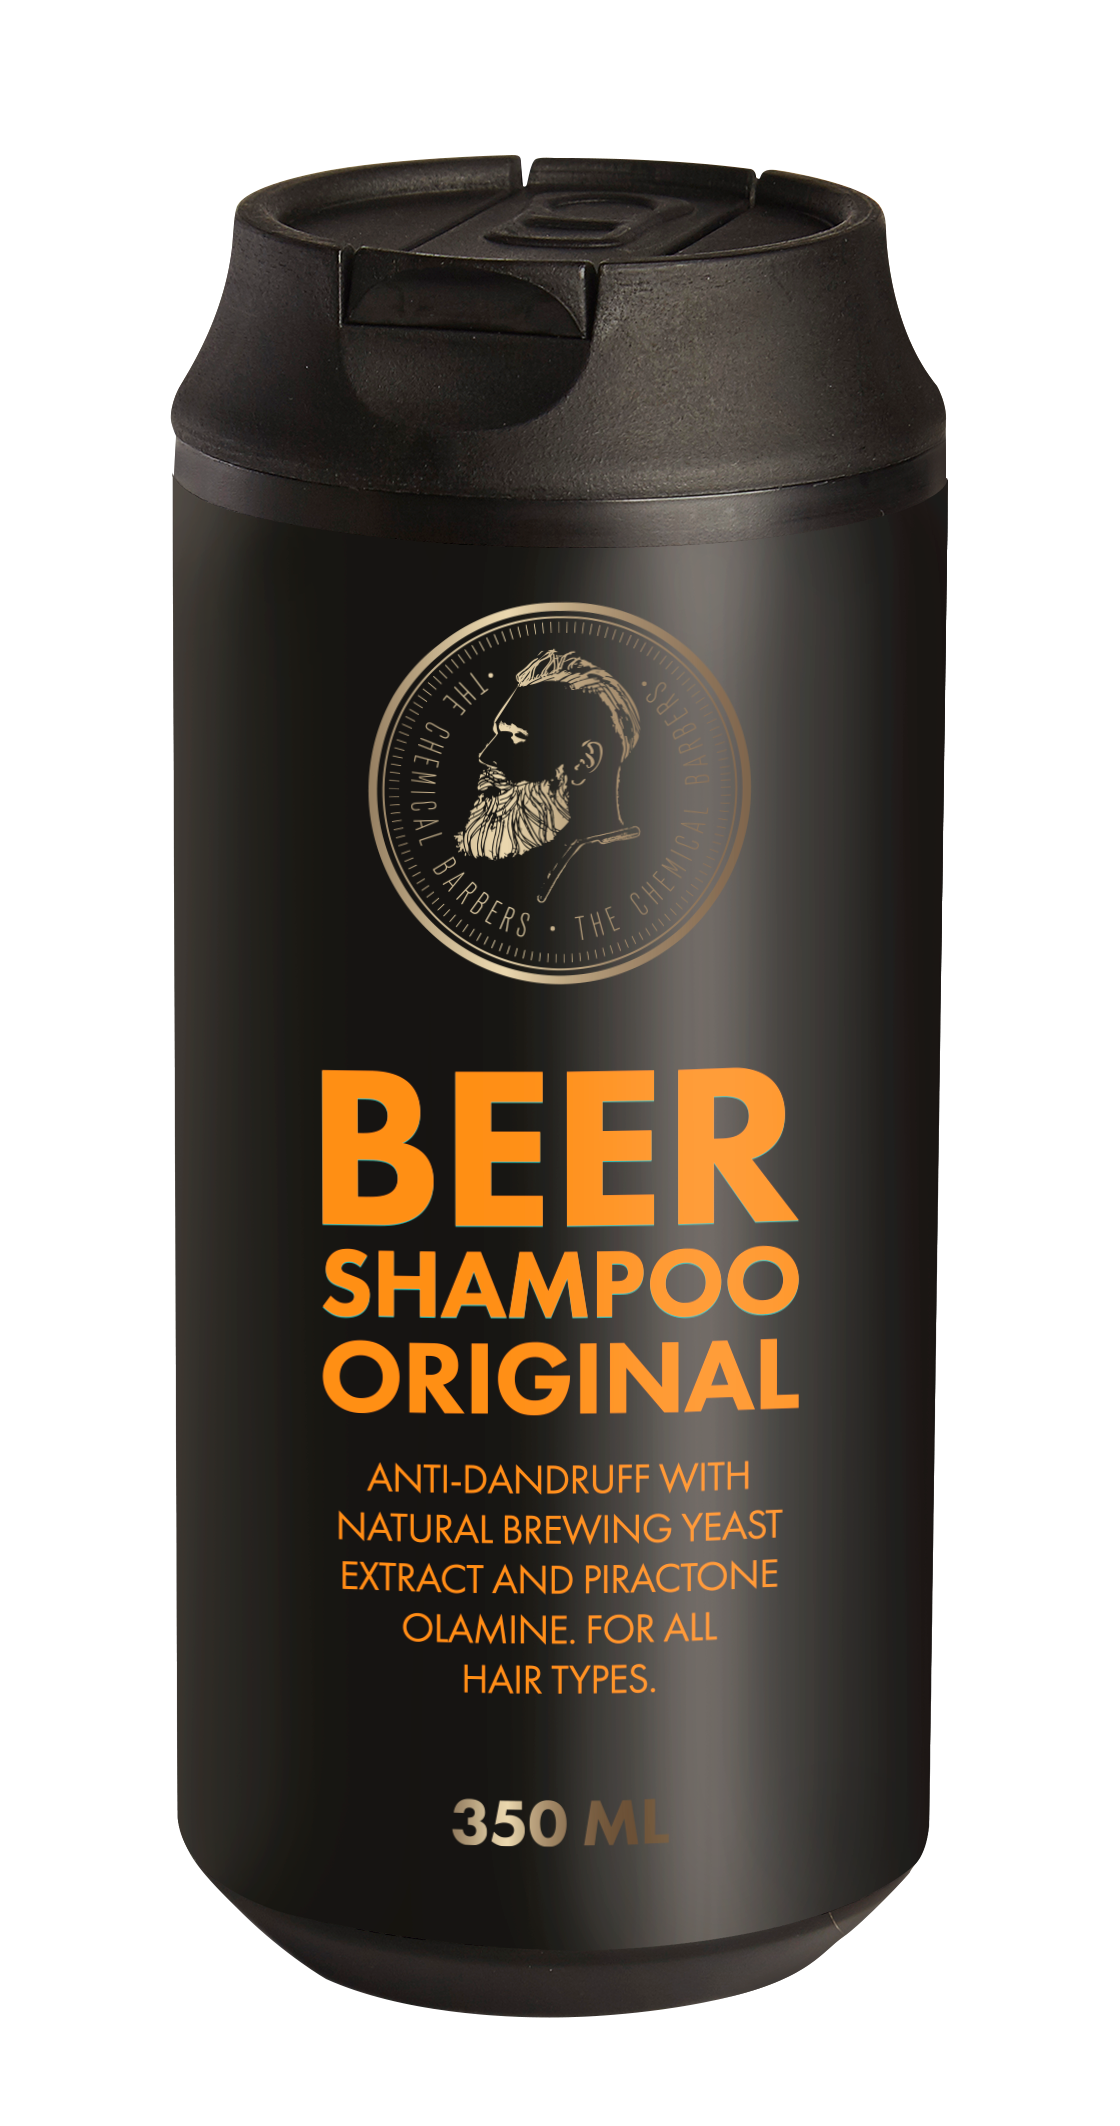 BEER SHAMPOO ORIGINAL